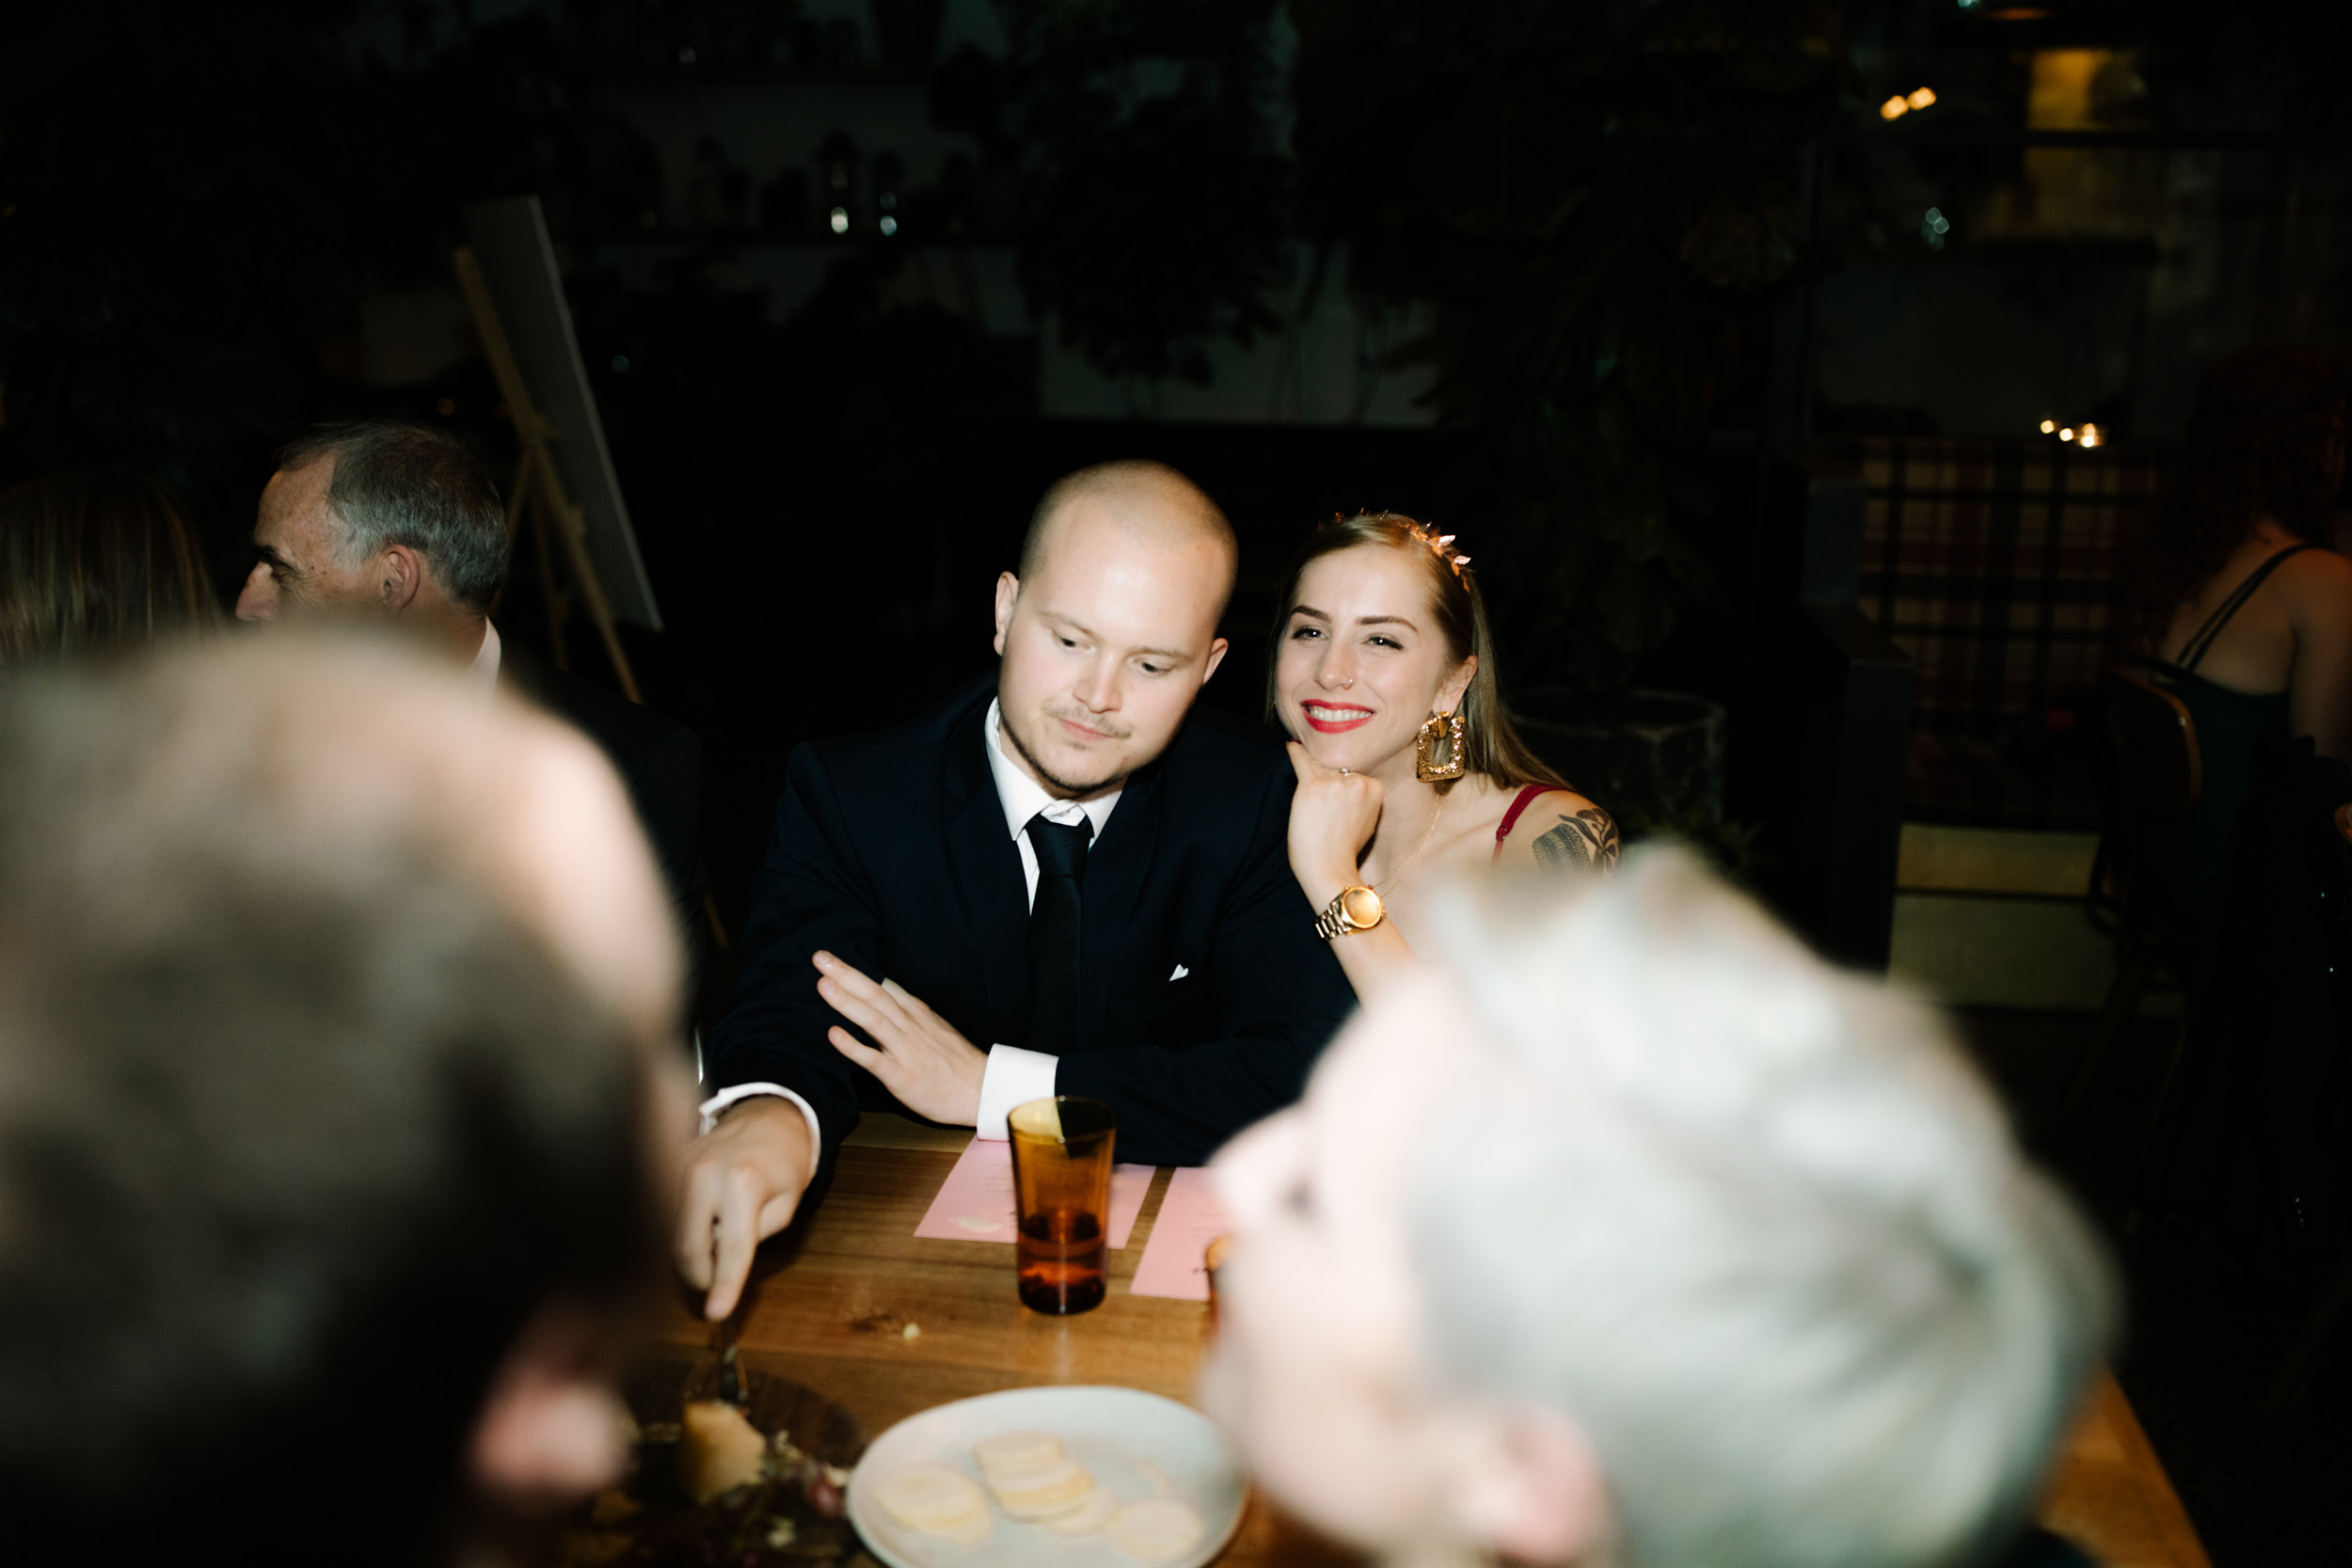 I_Got_You_Babe_Weddings_Emily_Matt_Rupert_Glasshaus_Melbourne0214.JPG